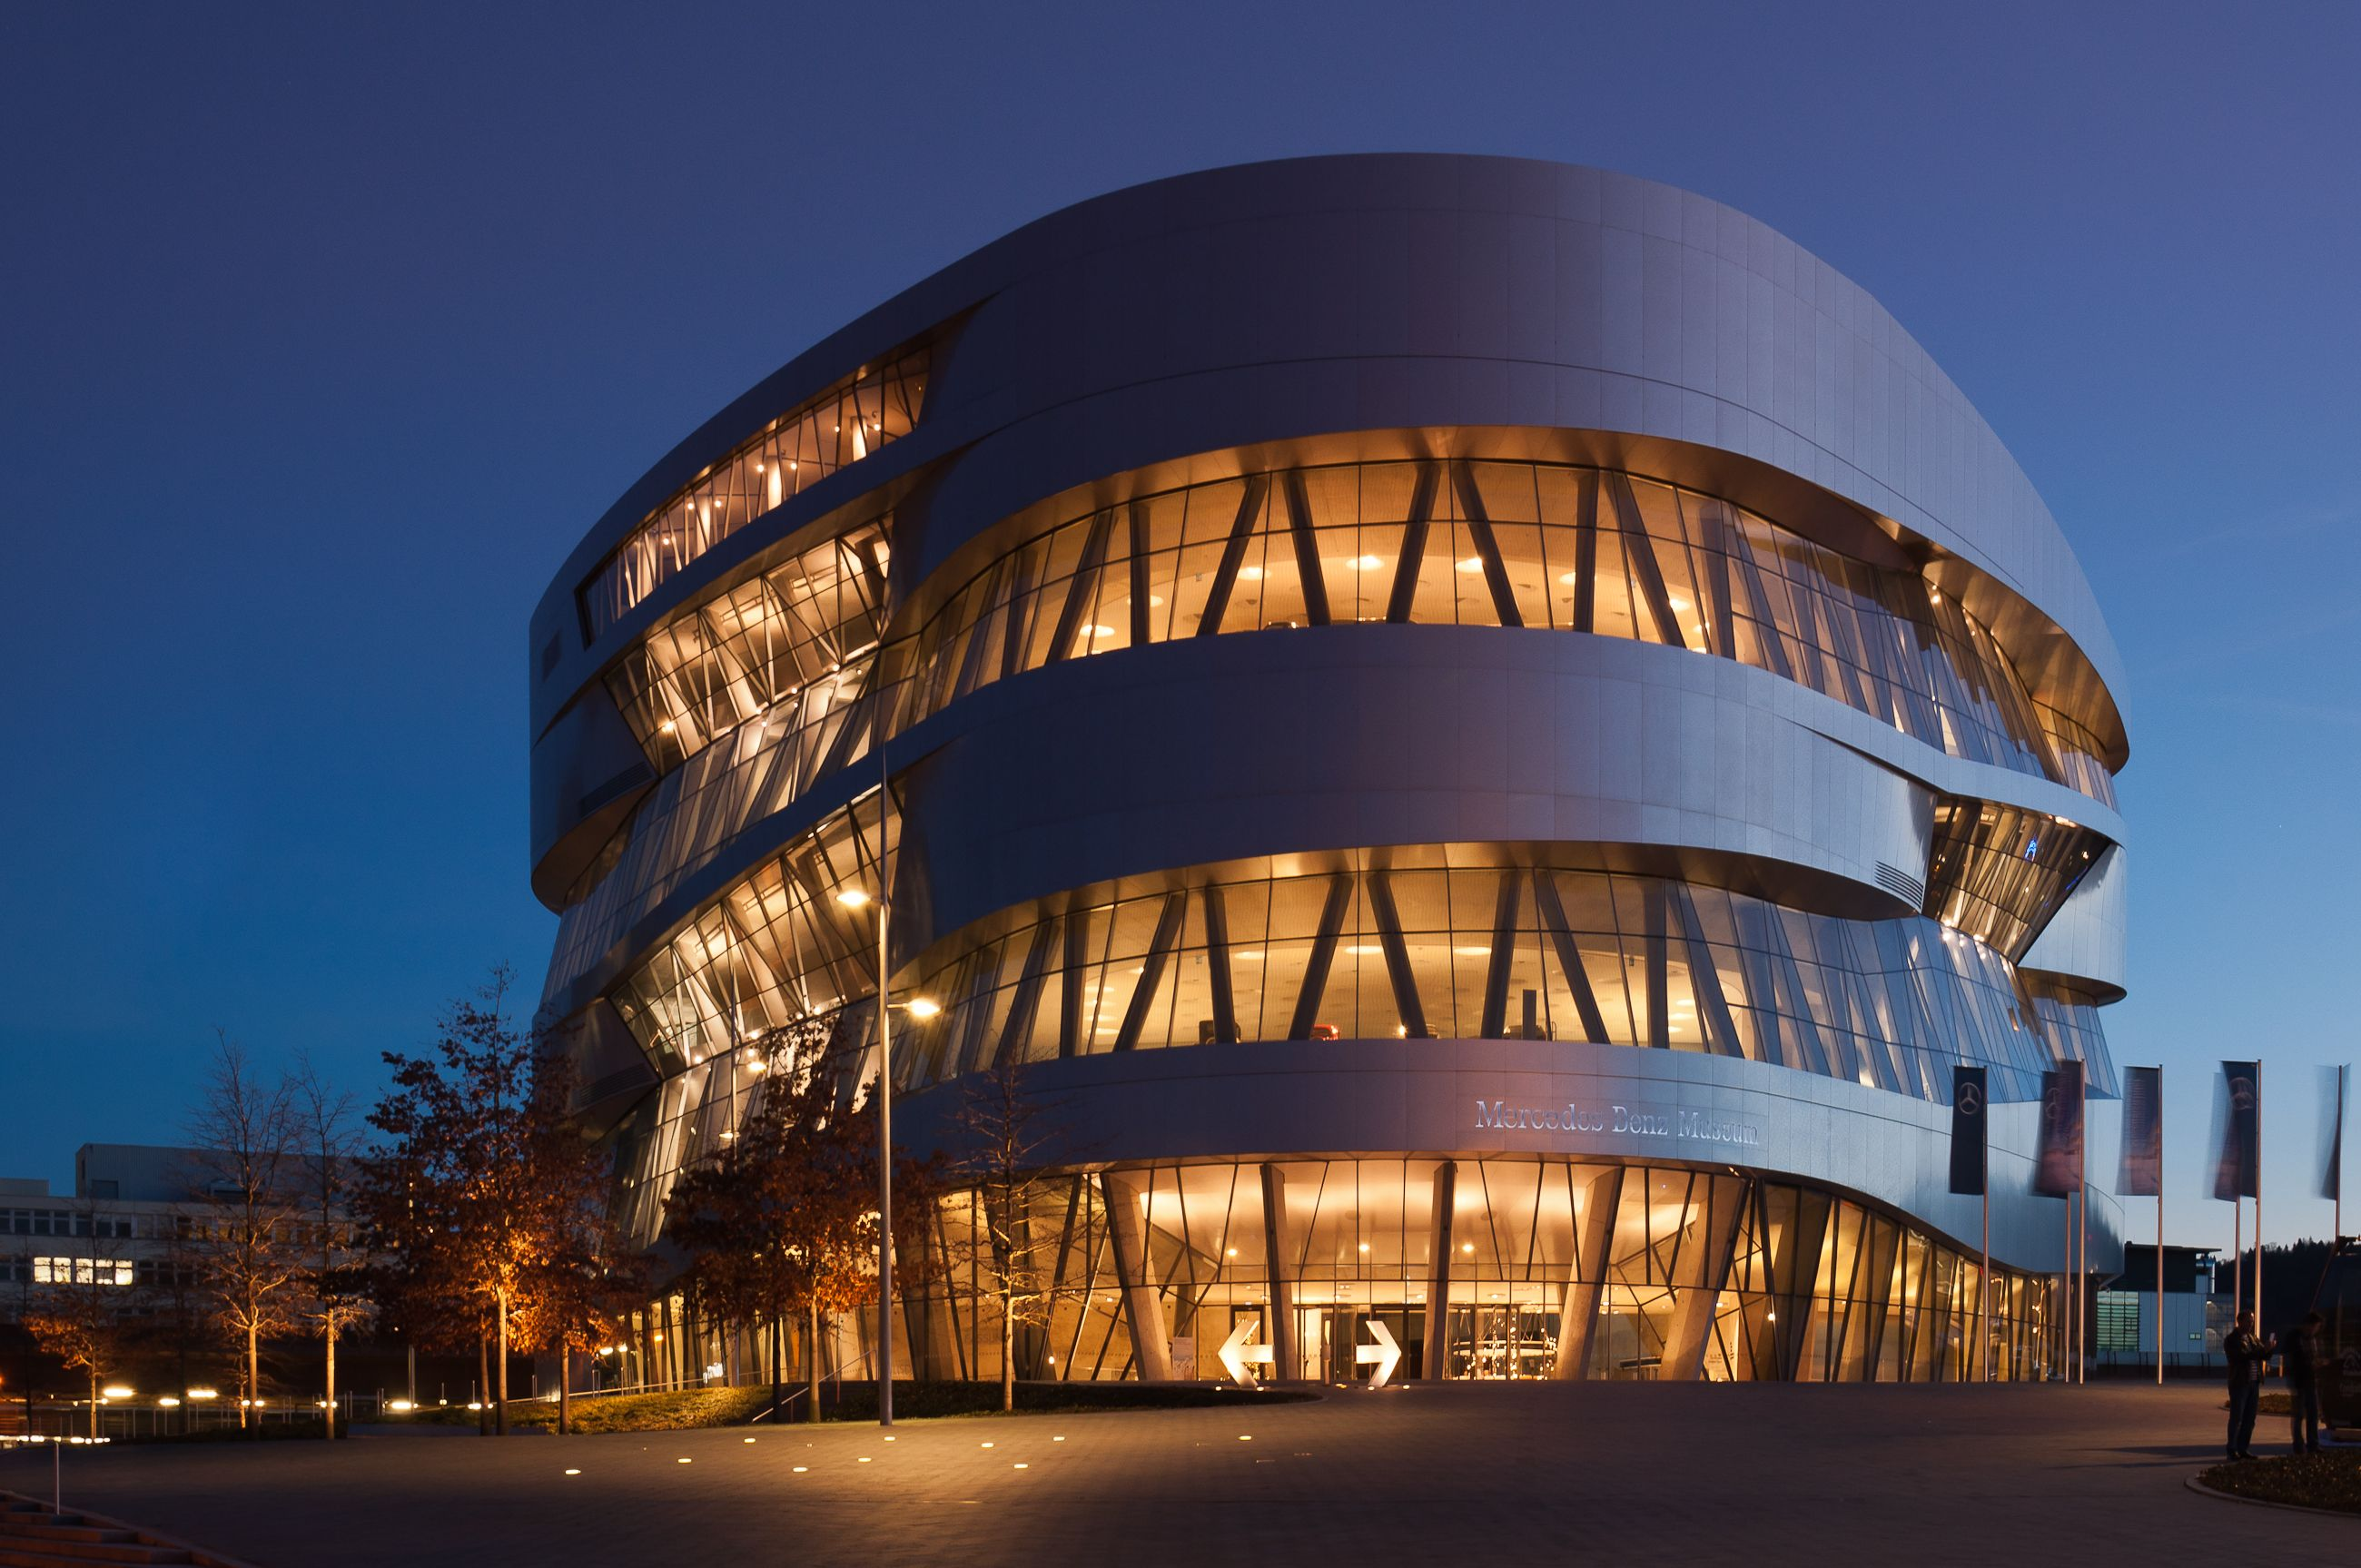 mercedes-benz museum, stuttgart, germany | amazing places around the